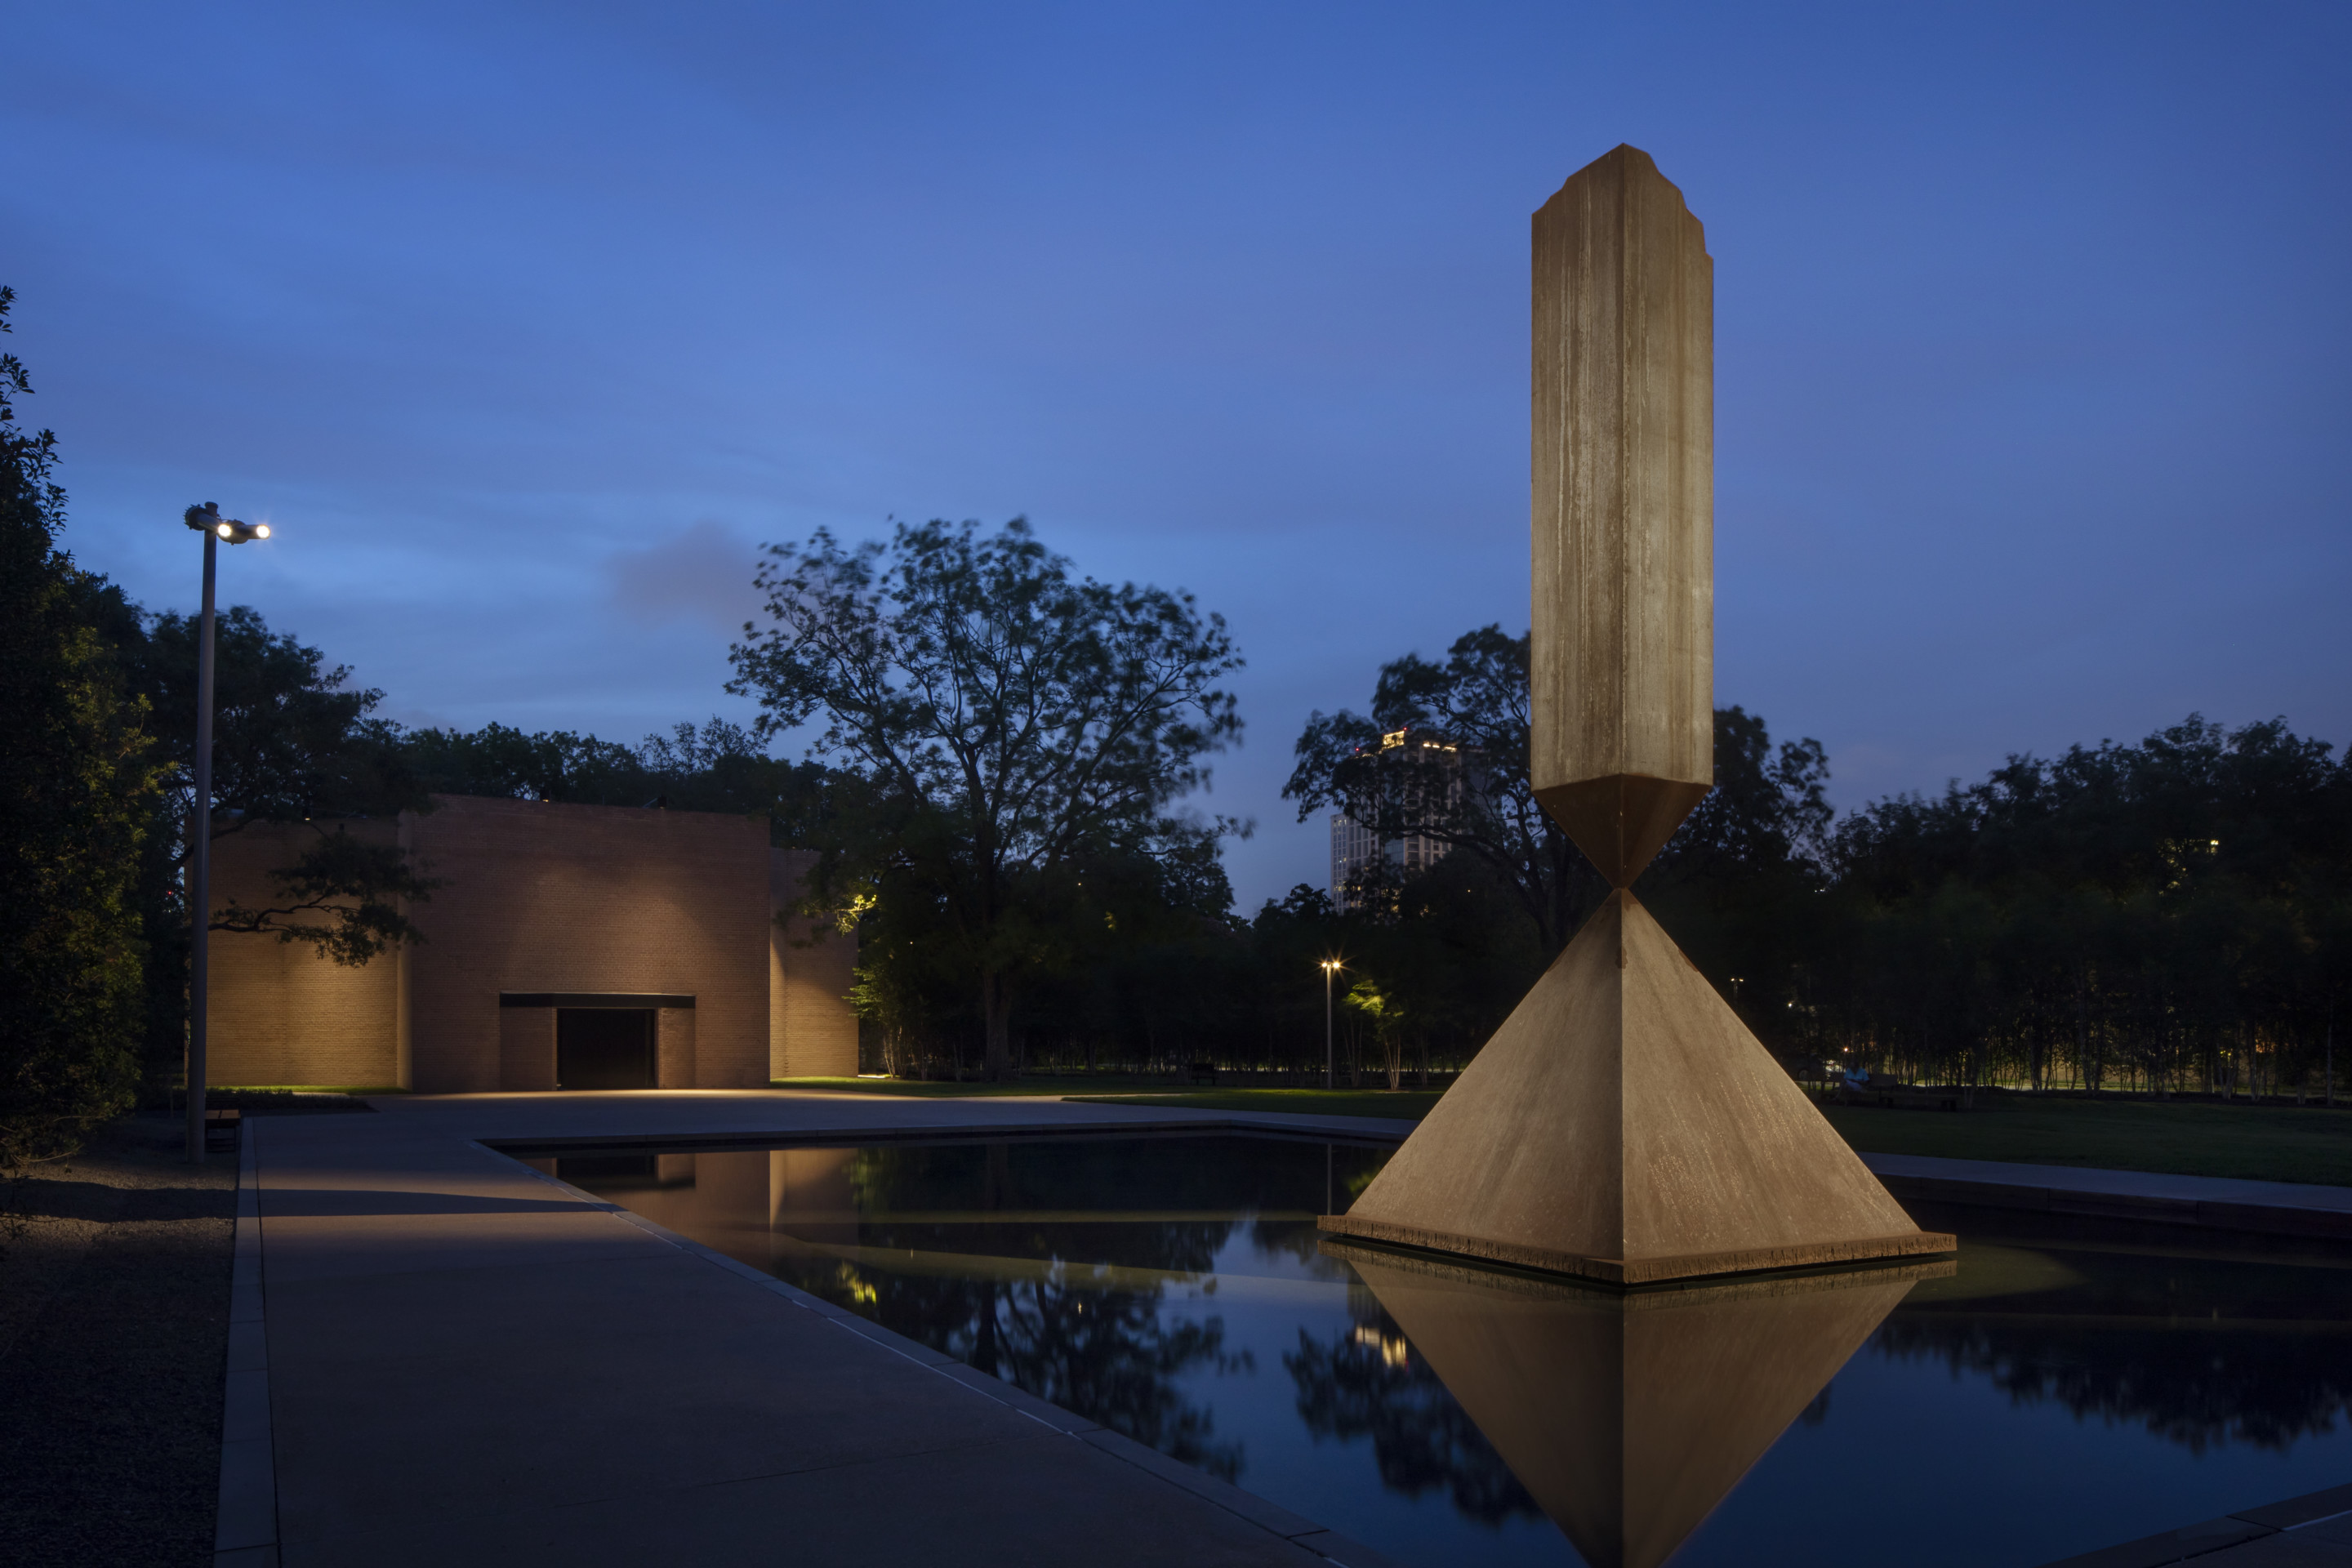 Outside of a squat building at night with an obelisk in foreground